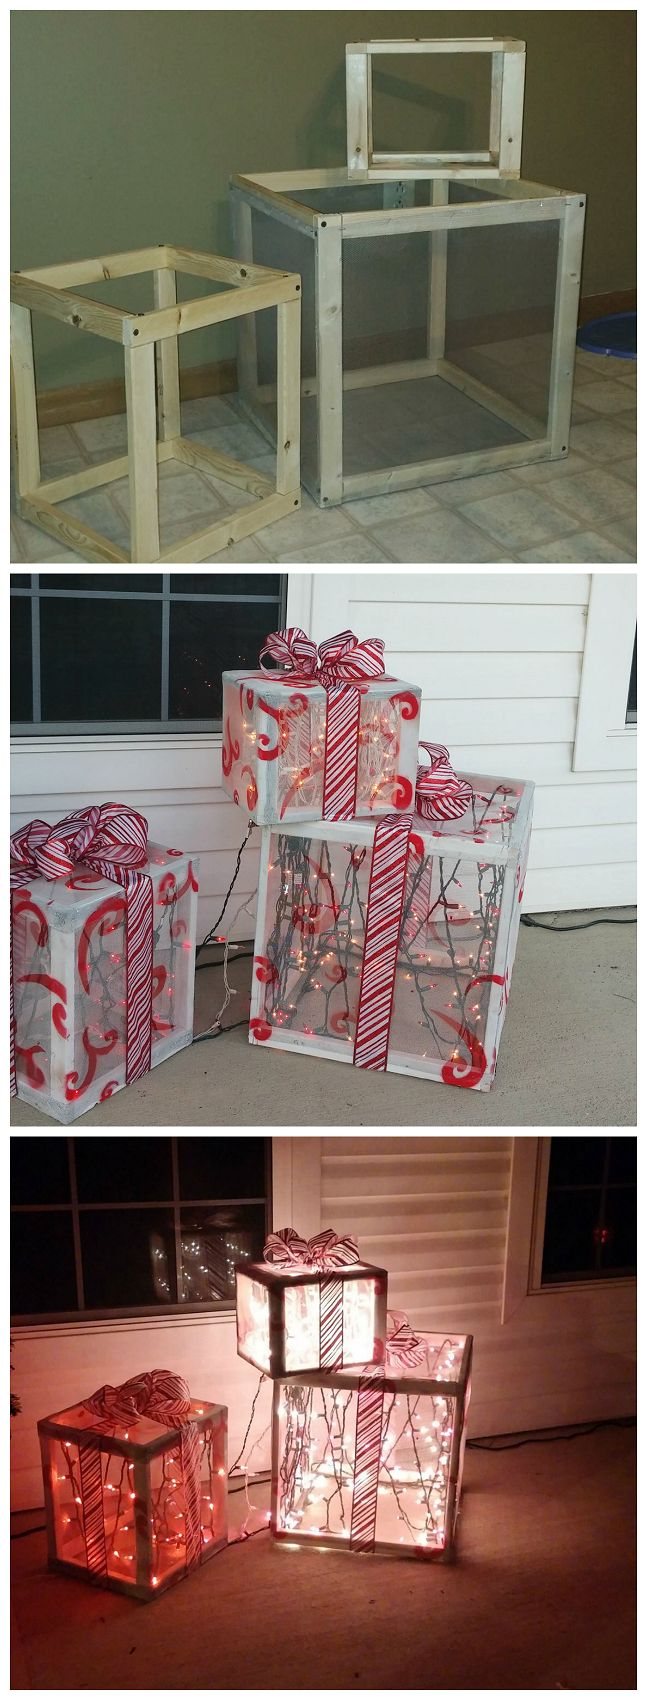 DIY Wood lighted presents for the front porch on Christmas! Cute craft